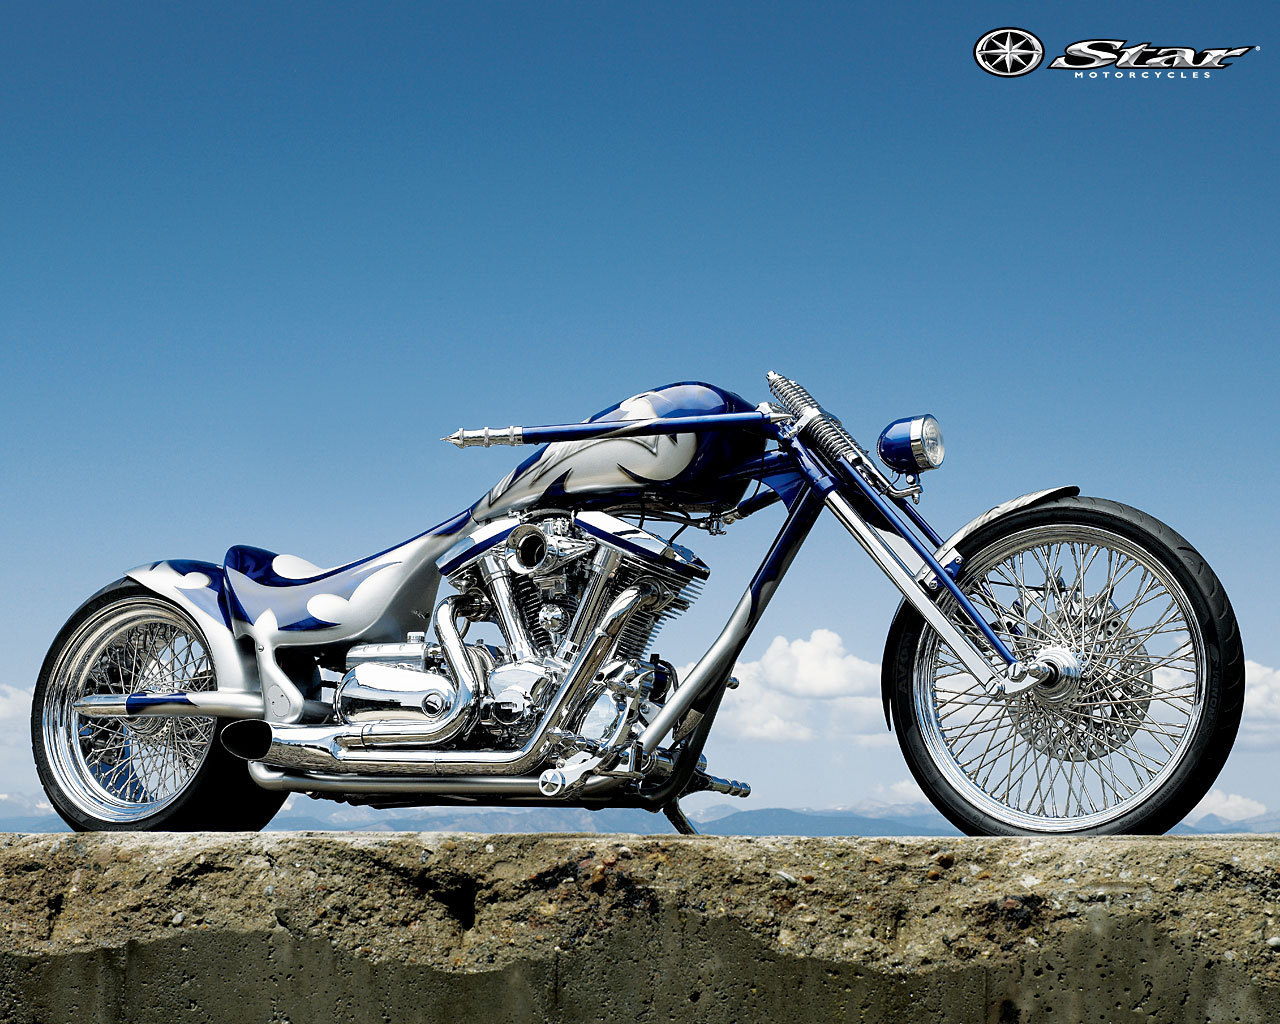 Yamaha Chopper Motorcycle 1280 x 1024 · 358 kB · jpeg